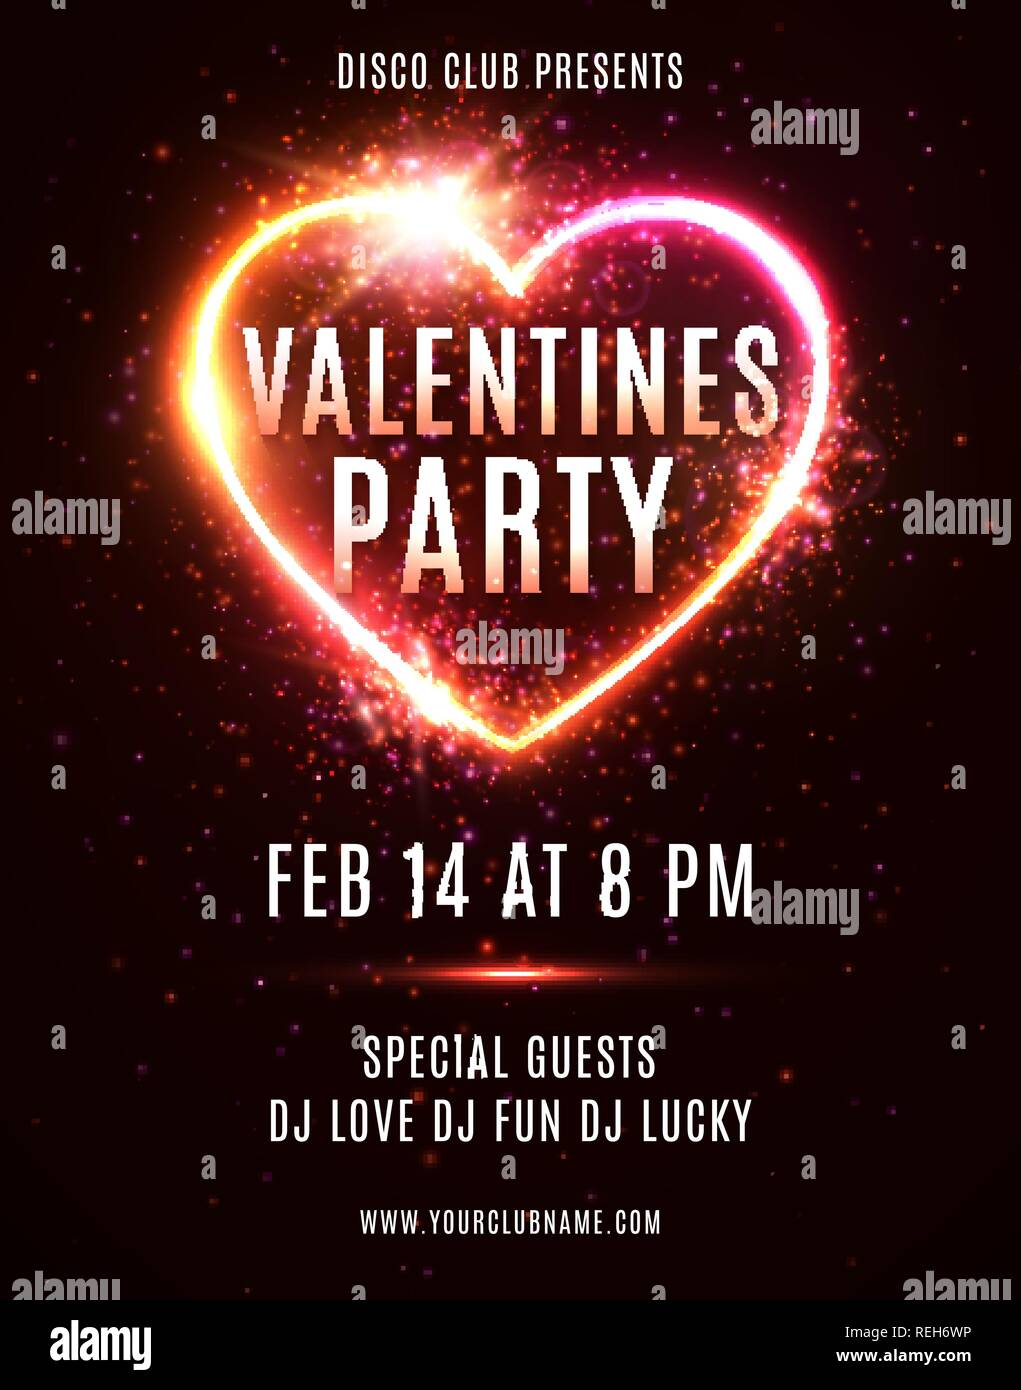 Valentines Day Party flyer or poster design template on dark red backdrop. Illuminated glowing heart background with light explosion particles stars. Electric led neon sign. Bright vector illustration Stock Vector